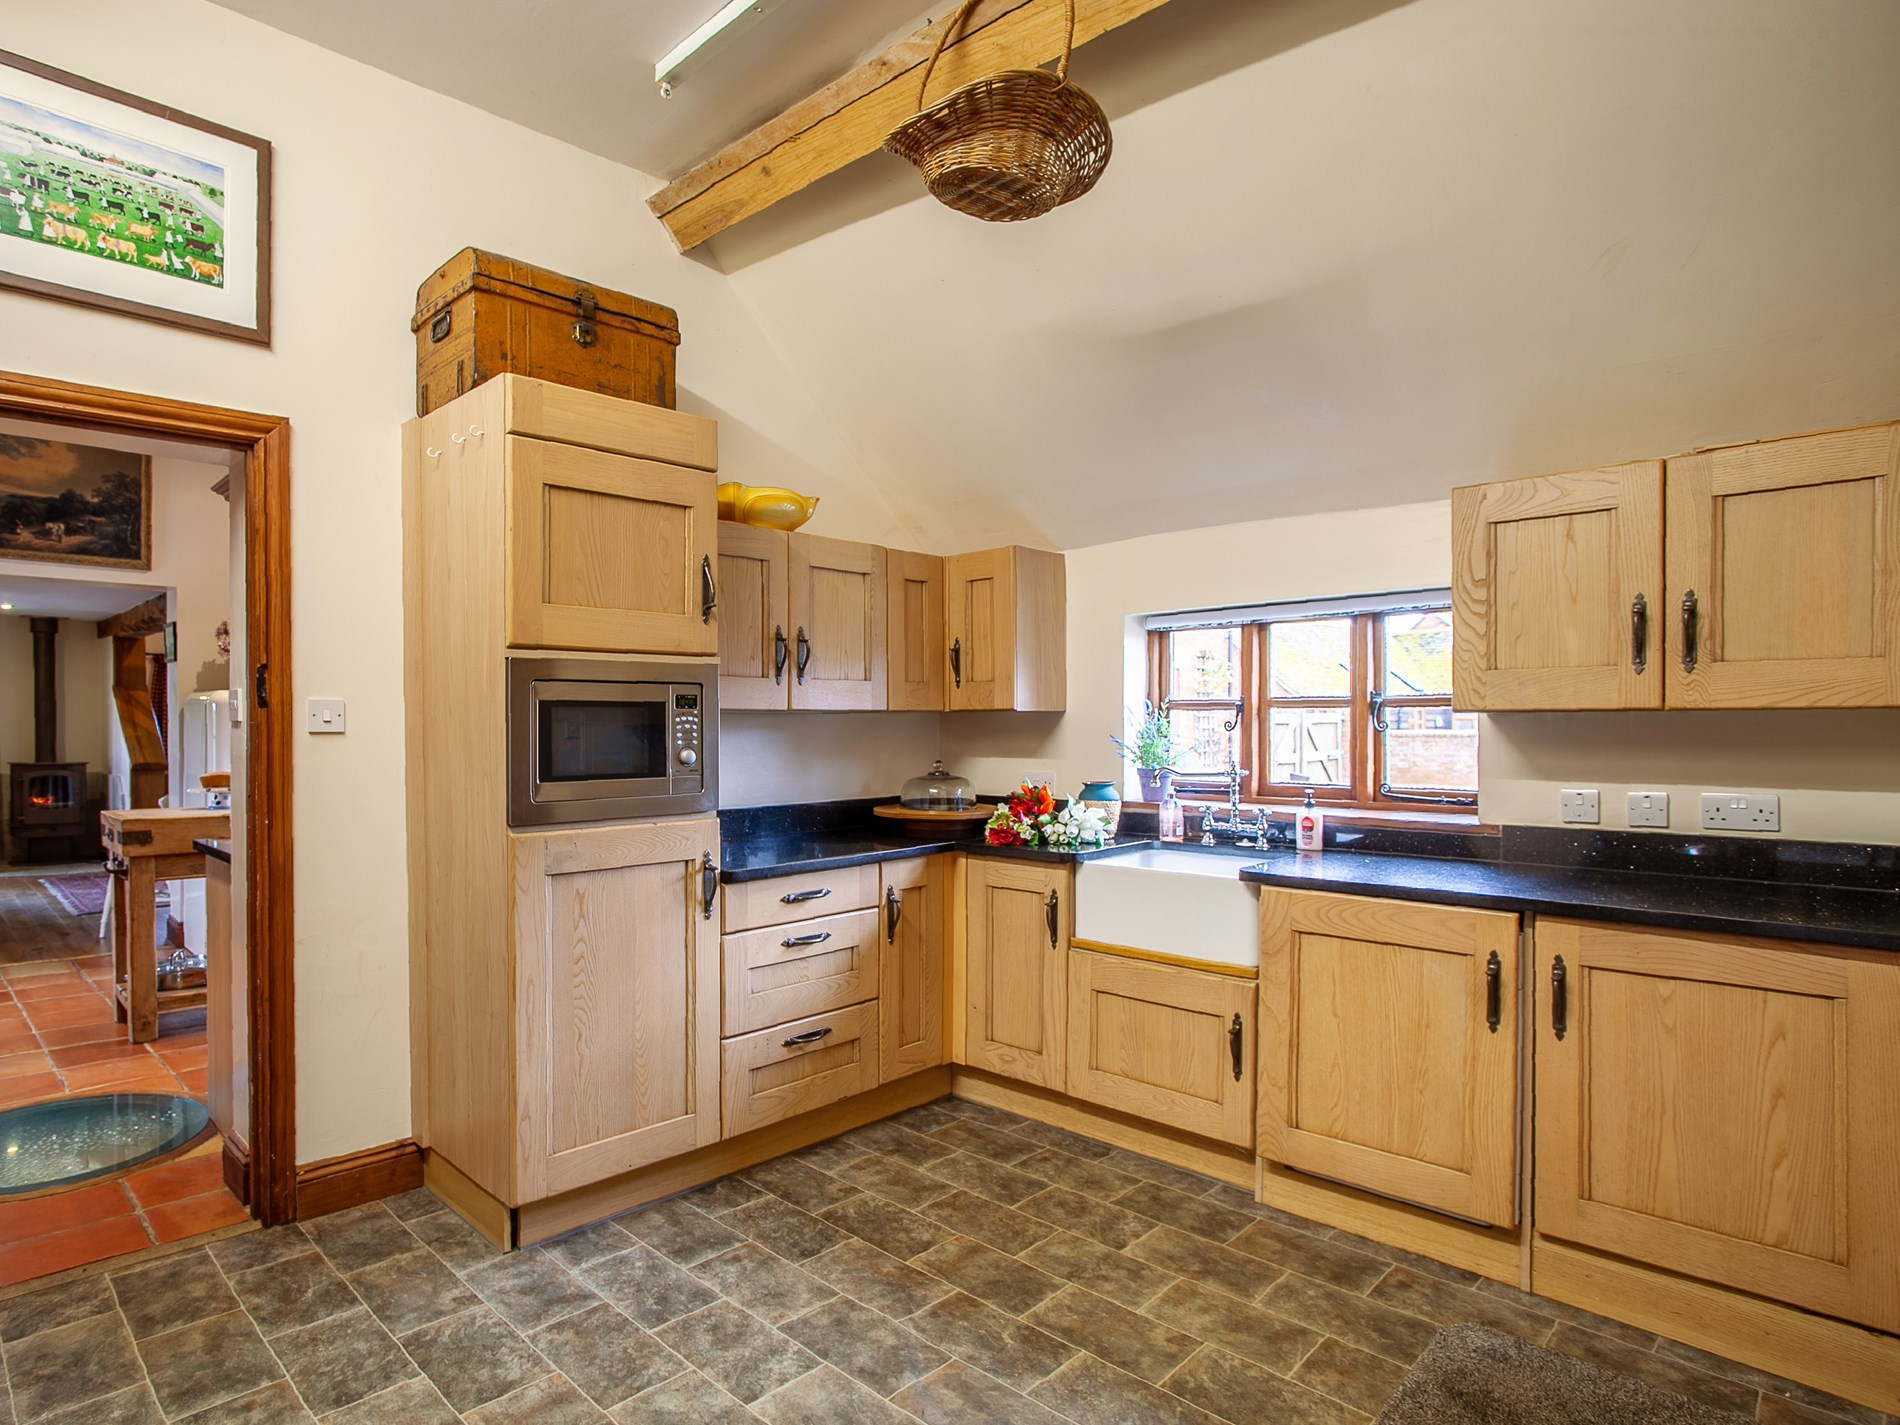 4 Bedroom Cottage in Gloucester, Heart of England